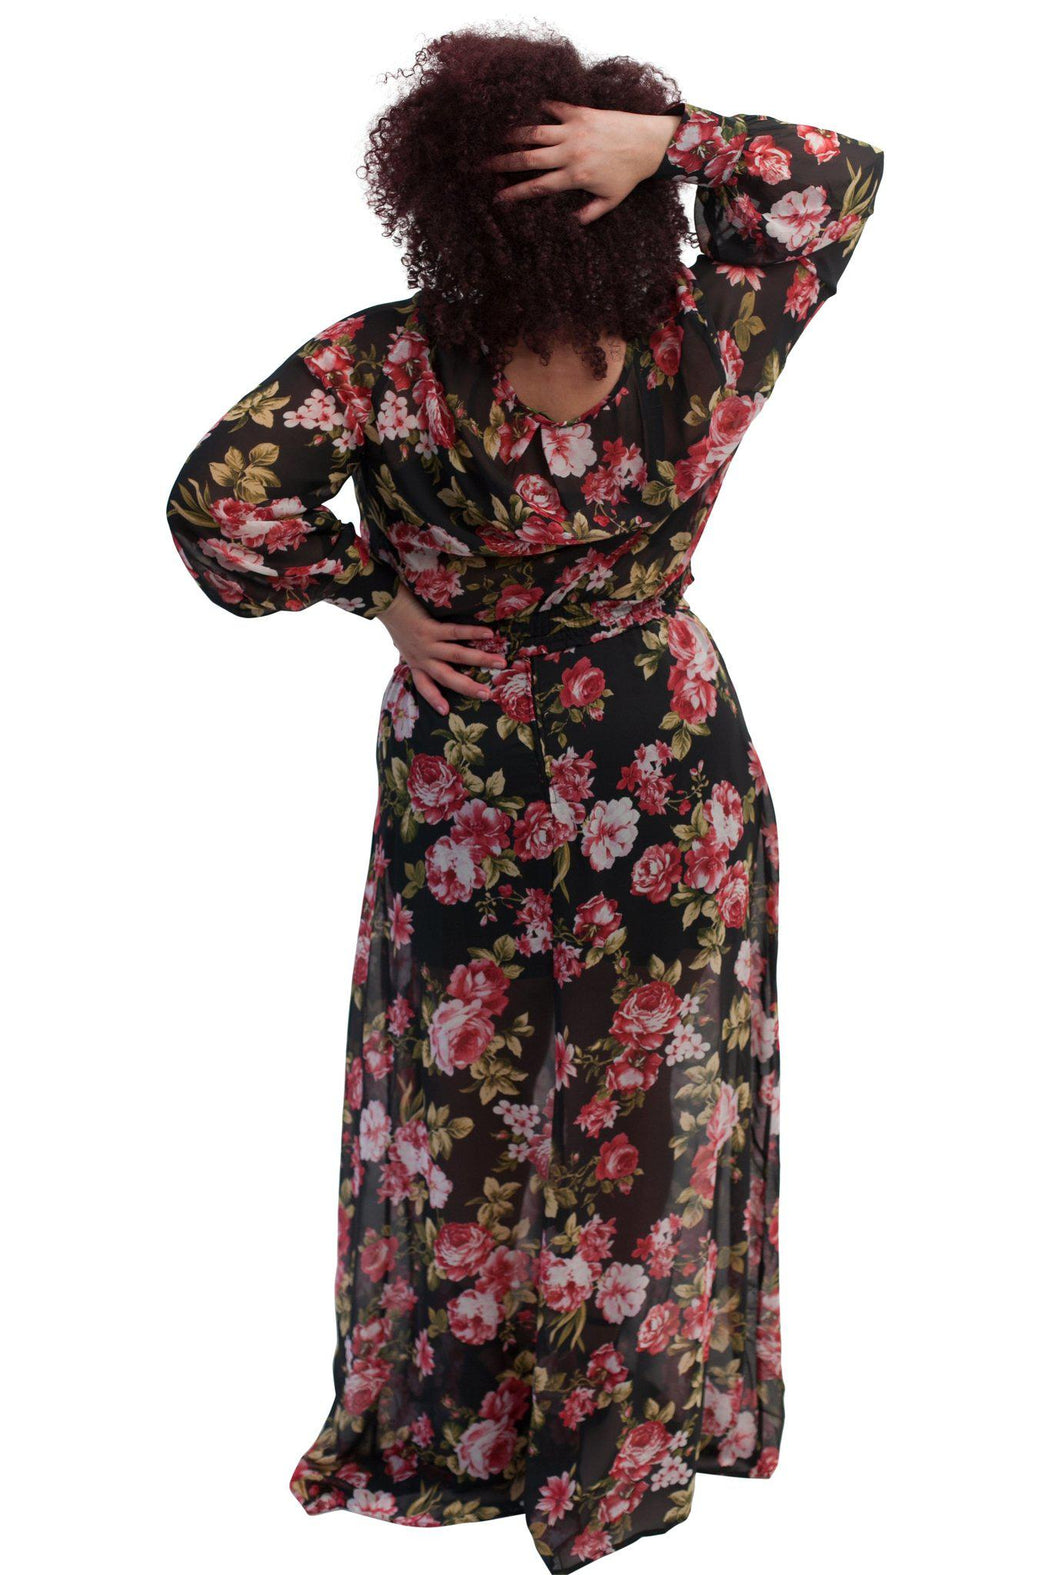 PRIMROSE black floral chiffon matched set back view